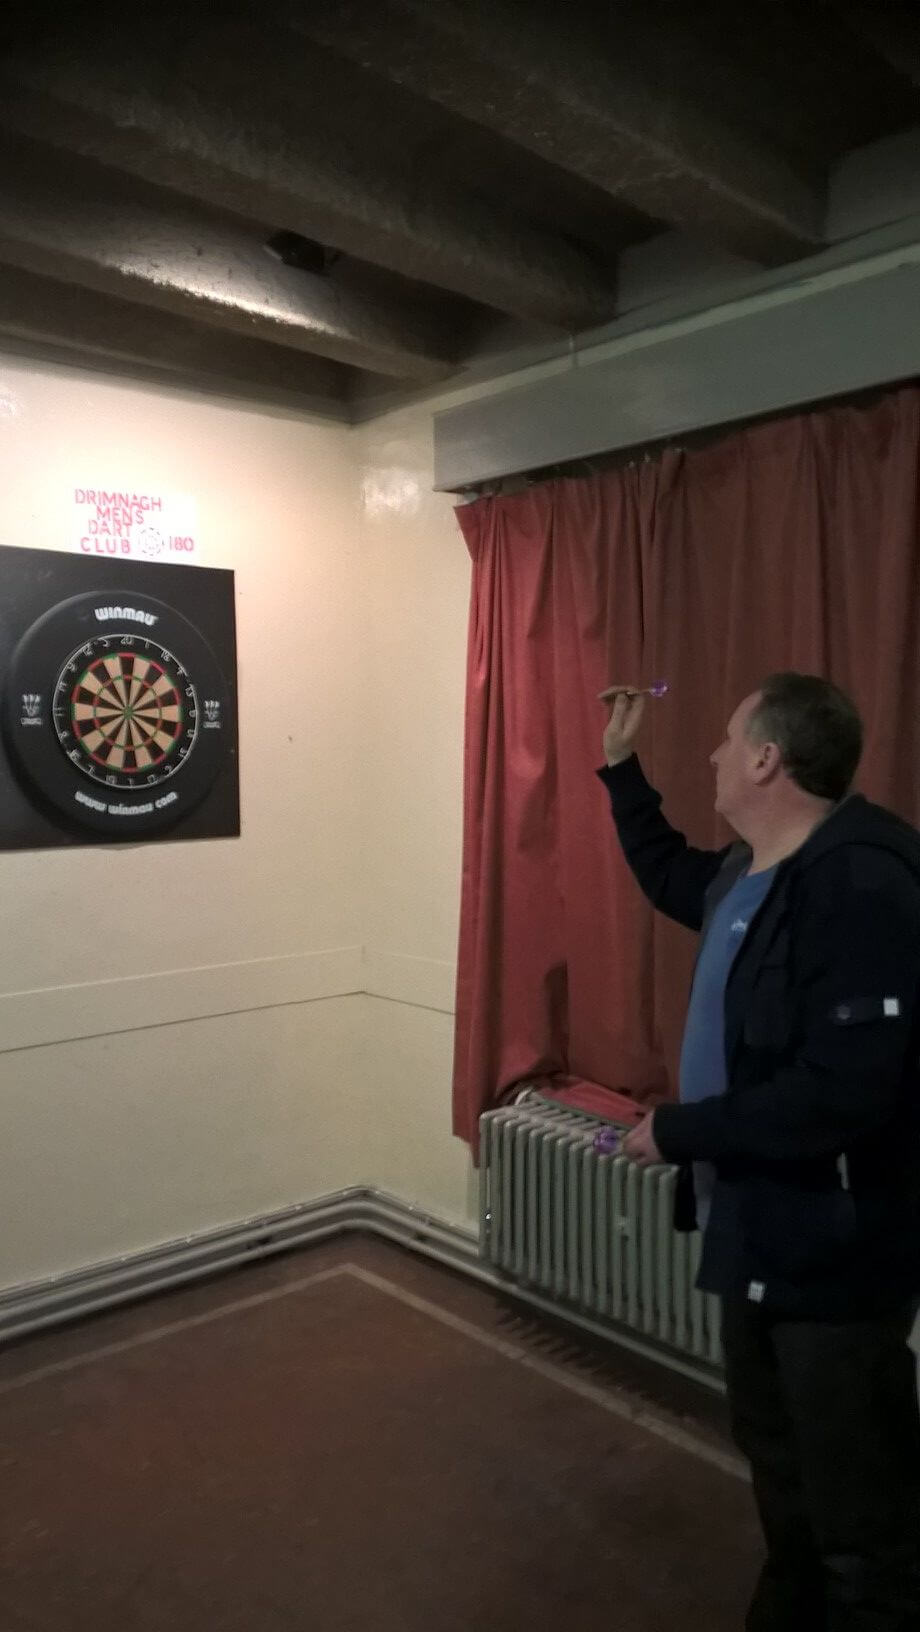 Men's Club Darts